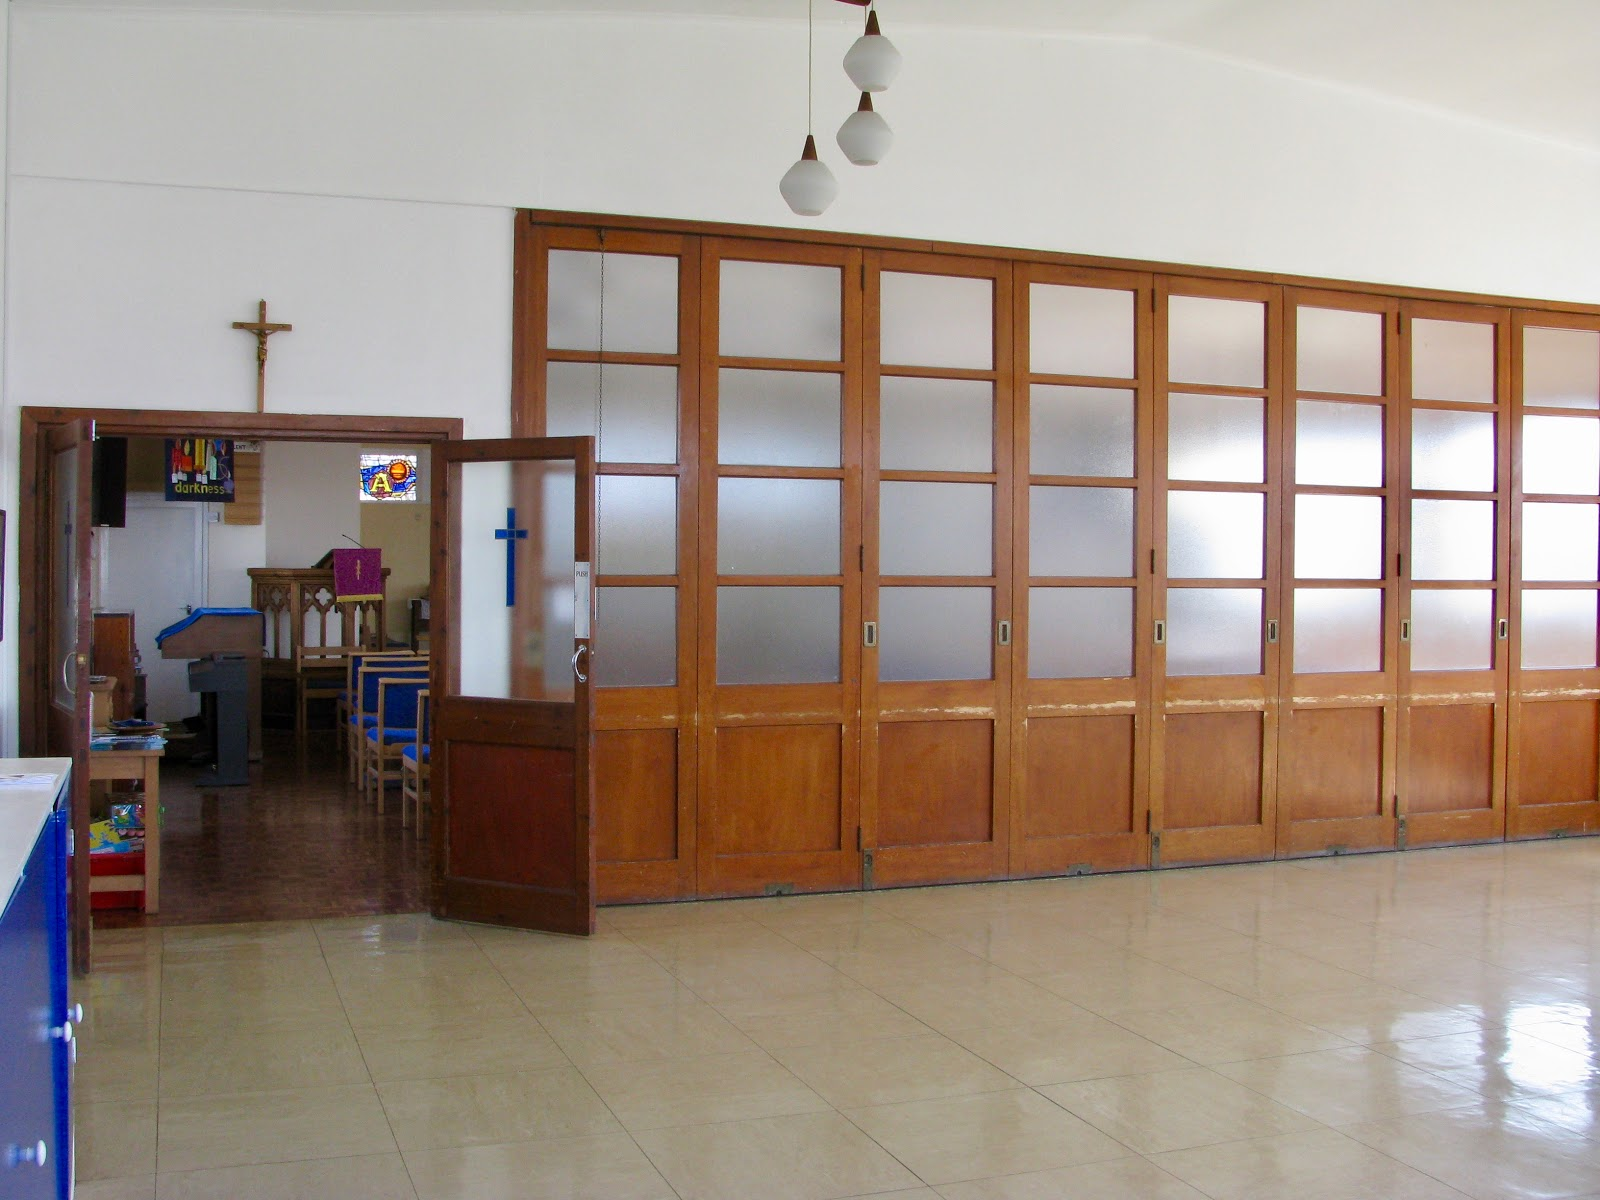 Image of entrance to church via wooden glazed doors and wooden glazed sliding doors which open to extend the church in to the hall. White walls. Sunny outside